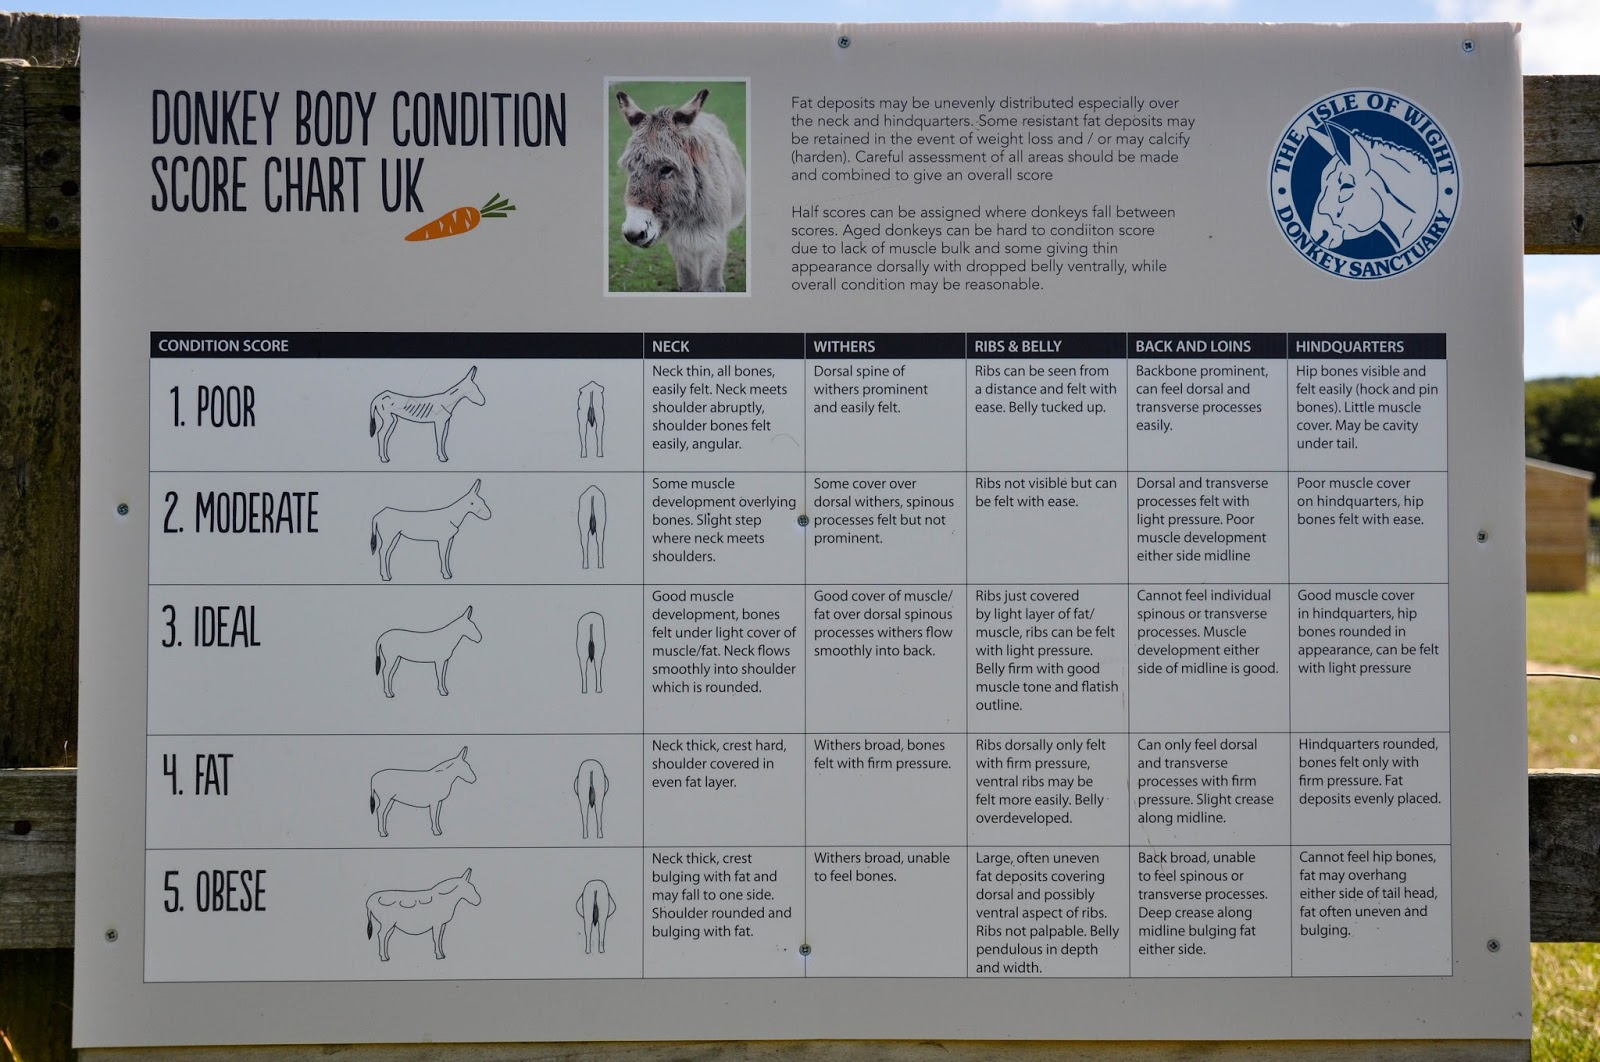 Donkey Body Condition Score Chart, The Donkey Sanctuary, Isle of Wight, UK